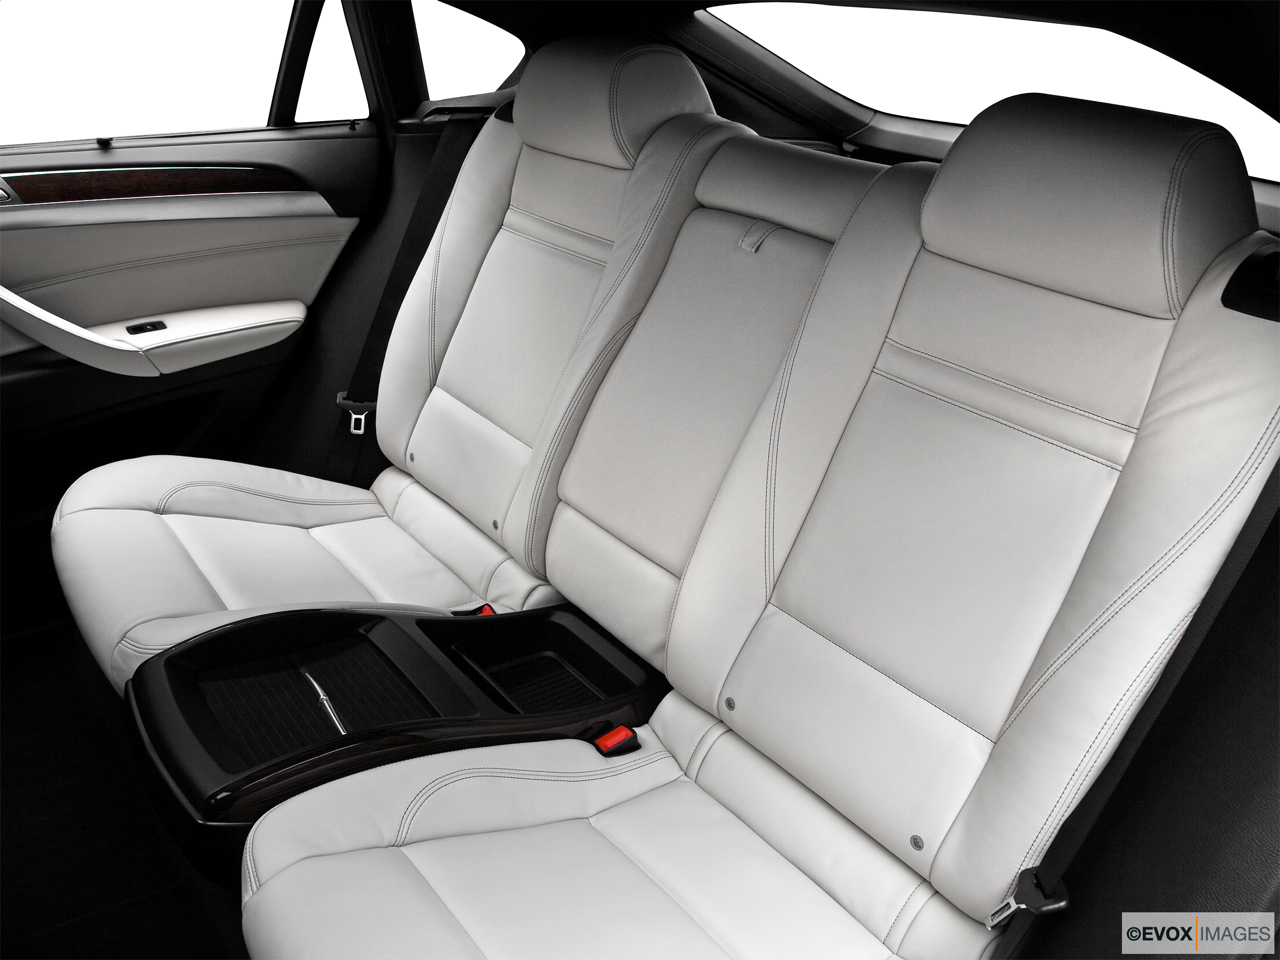 2010 BMW X6 Hybrid Base Rear seats from Drivers Side.